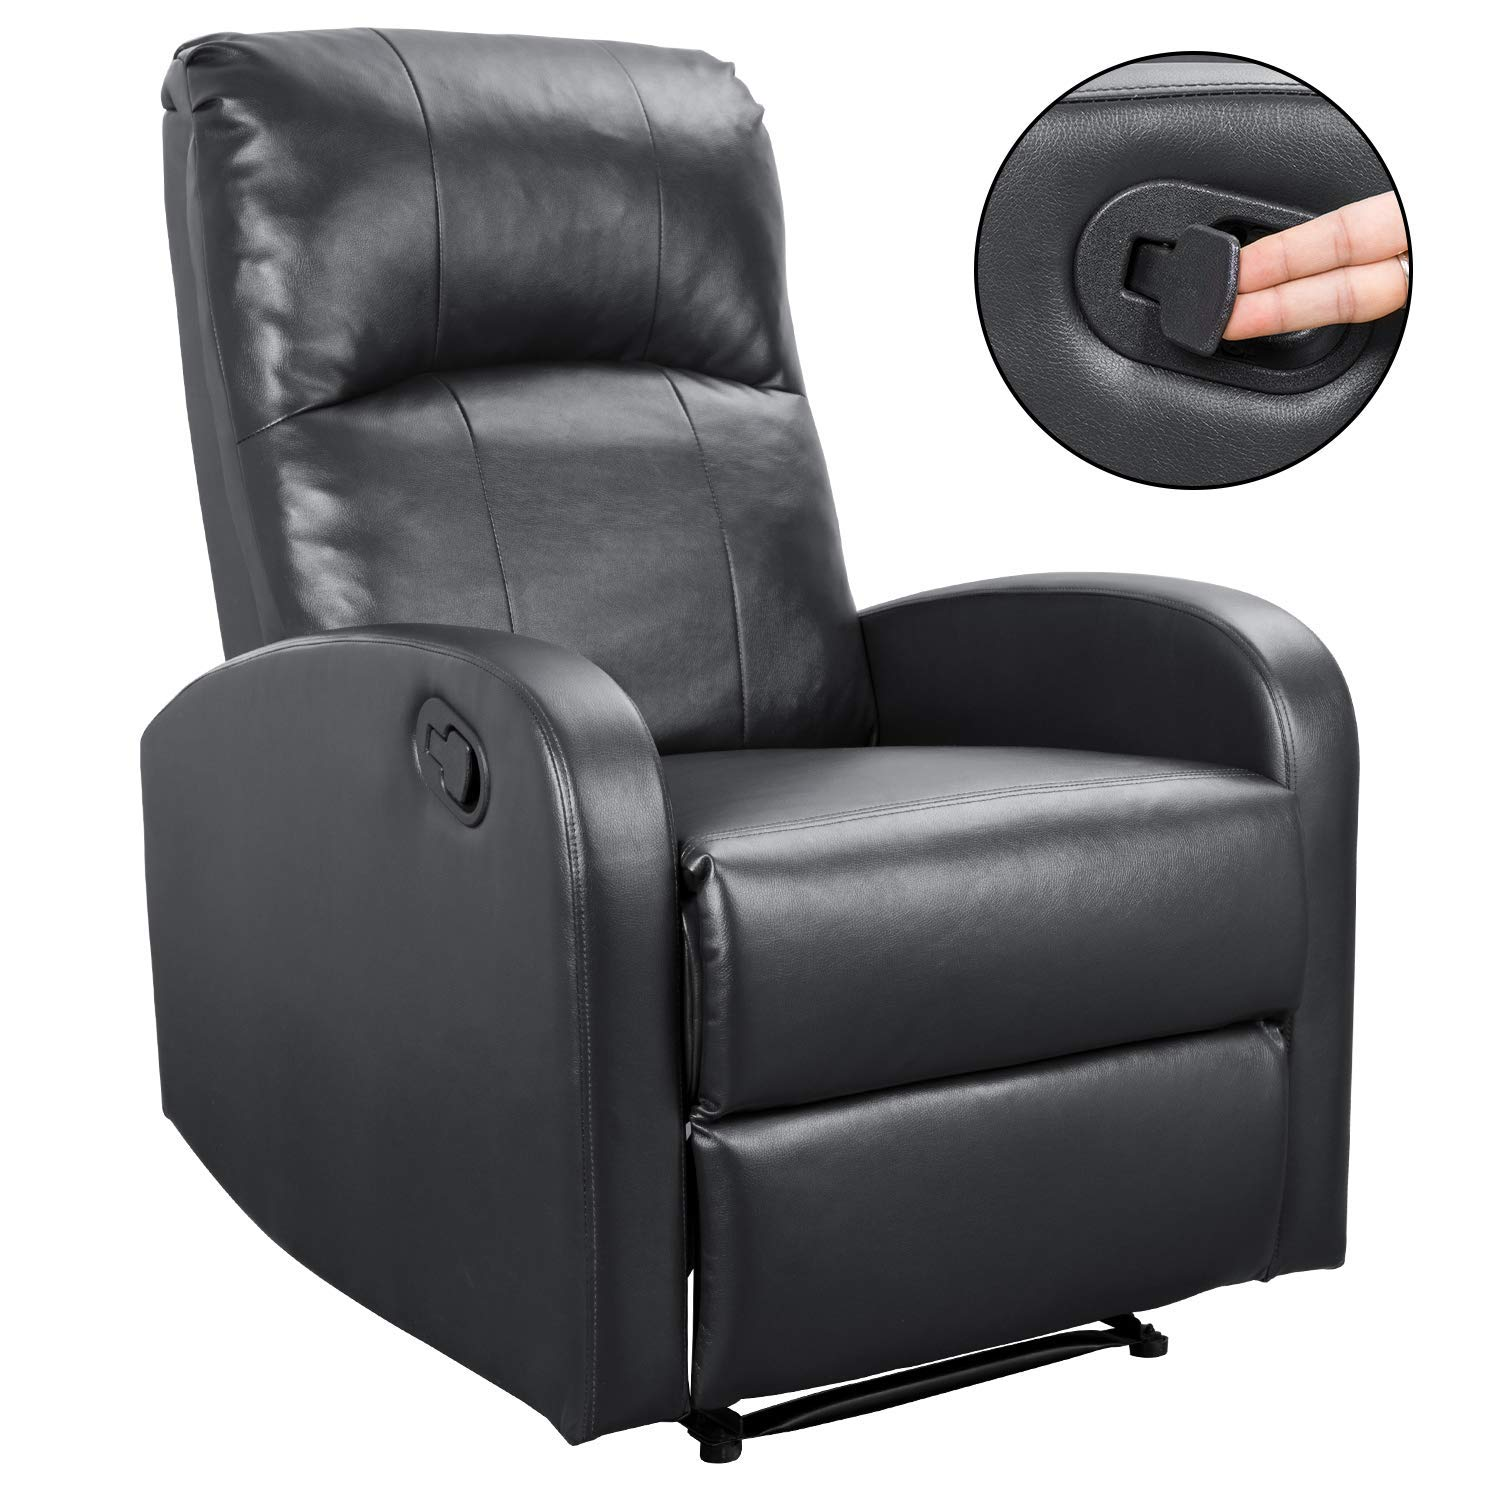 Homall PHL0 Modern Chaise Couch Lounger Sofa Recliner Chair Padded PU Leather Home Theater Seating, Bright Black by Homall